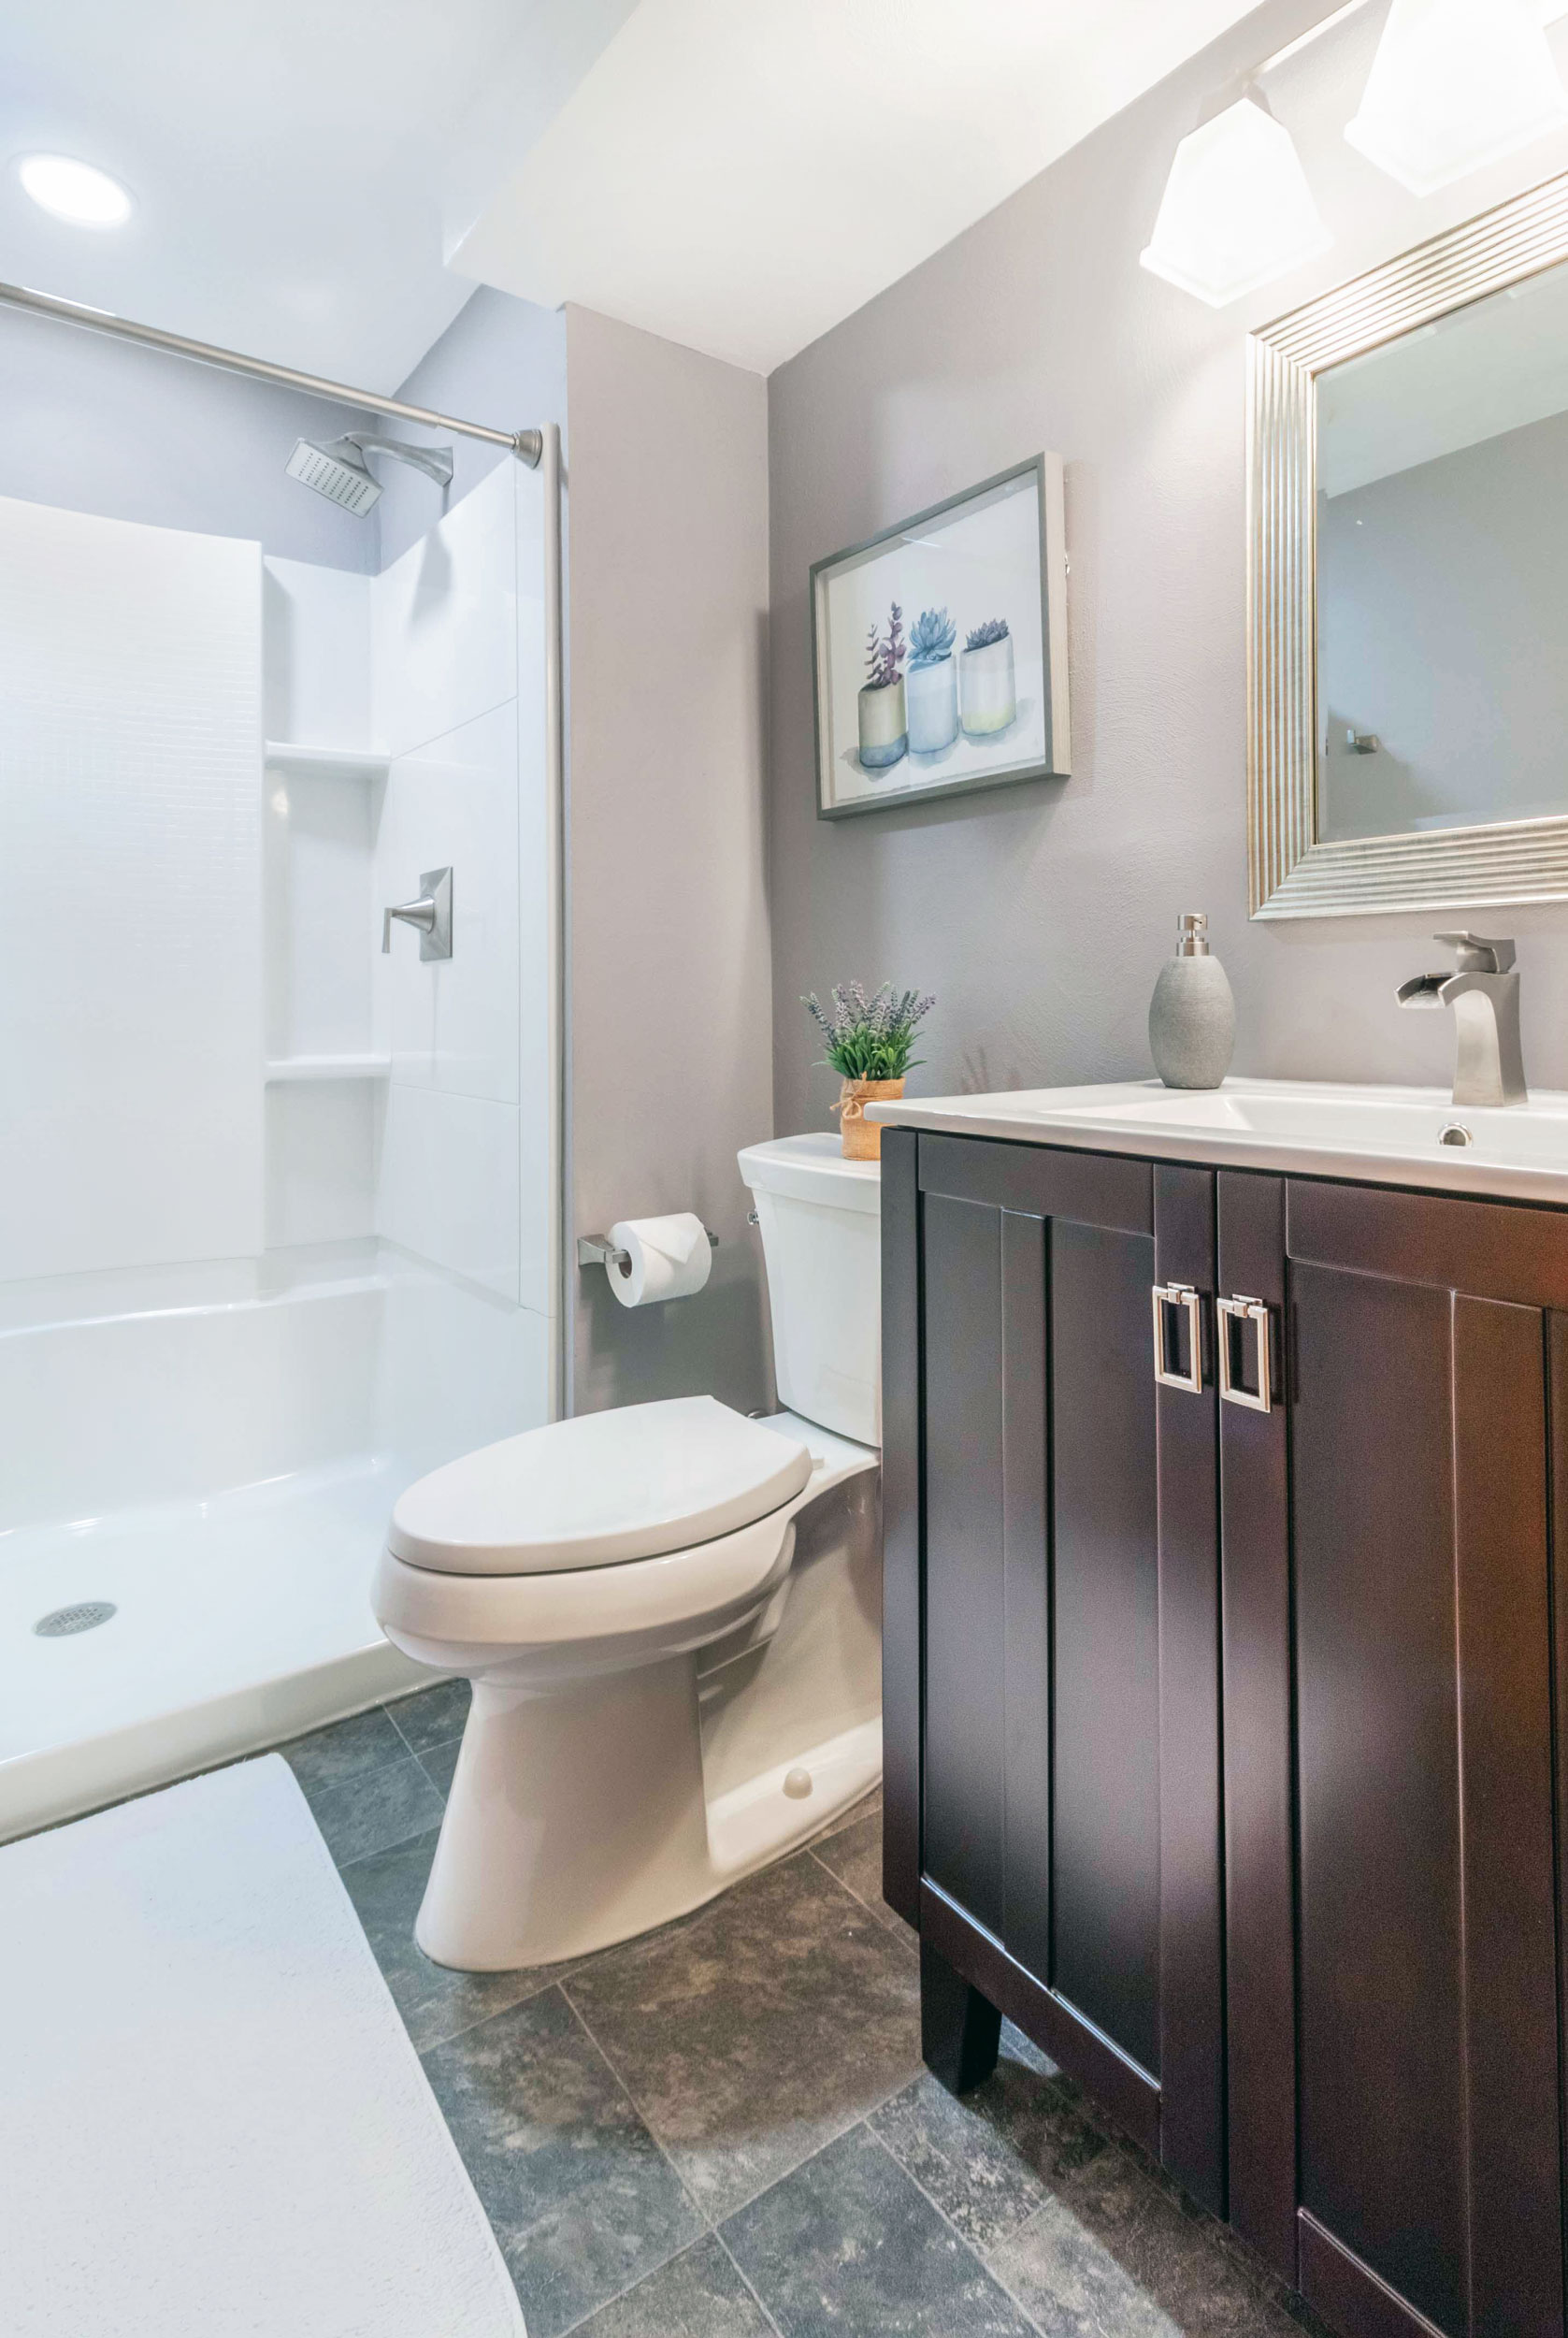 A Half-Bath redesigned To Accommodate A New Shower